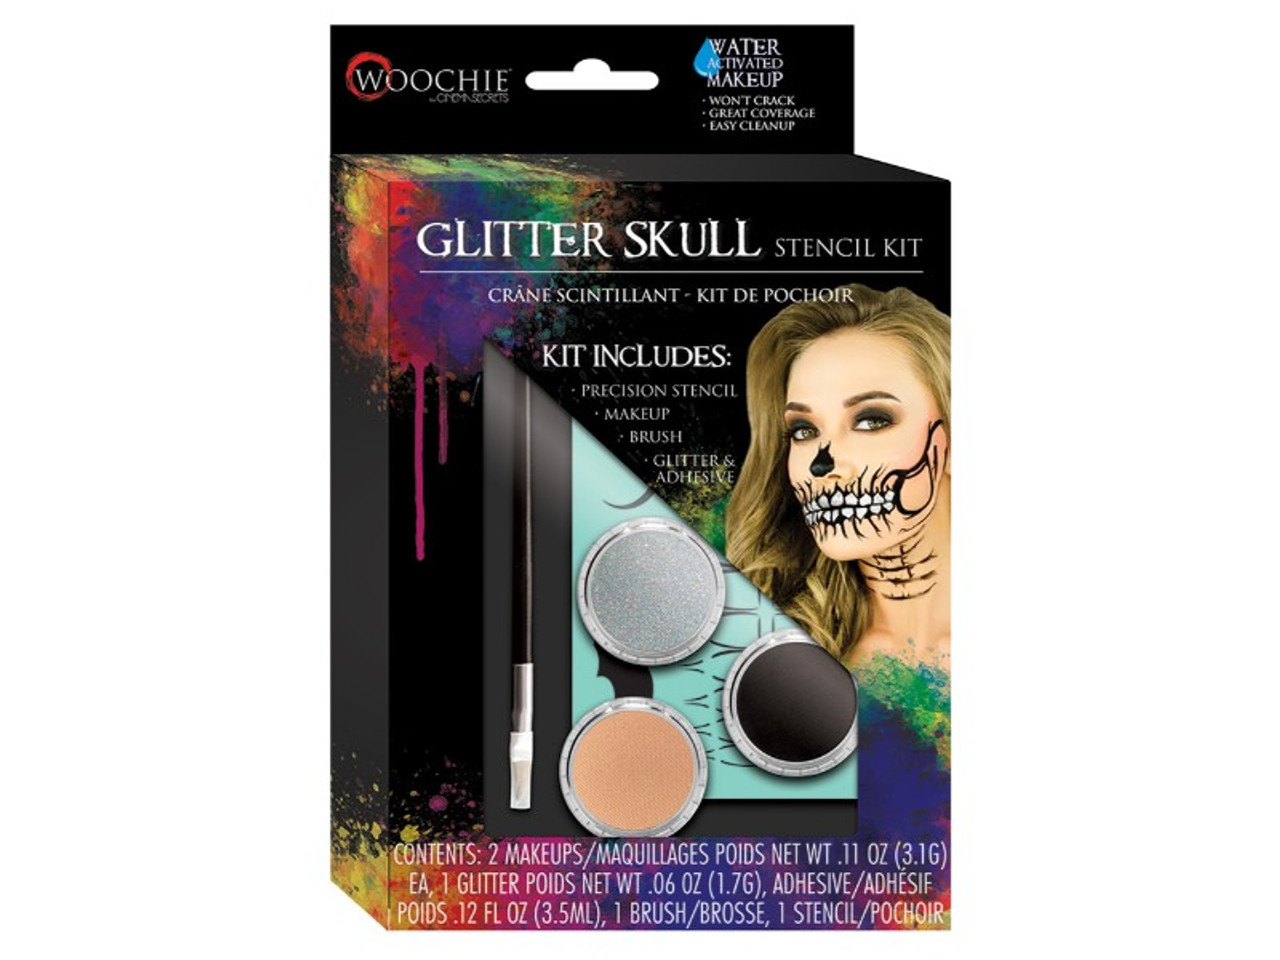 Glitter Skull Stencil Makeup Kit Are you a lover of The Day Of The Dead and